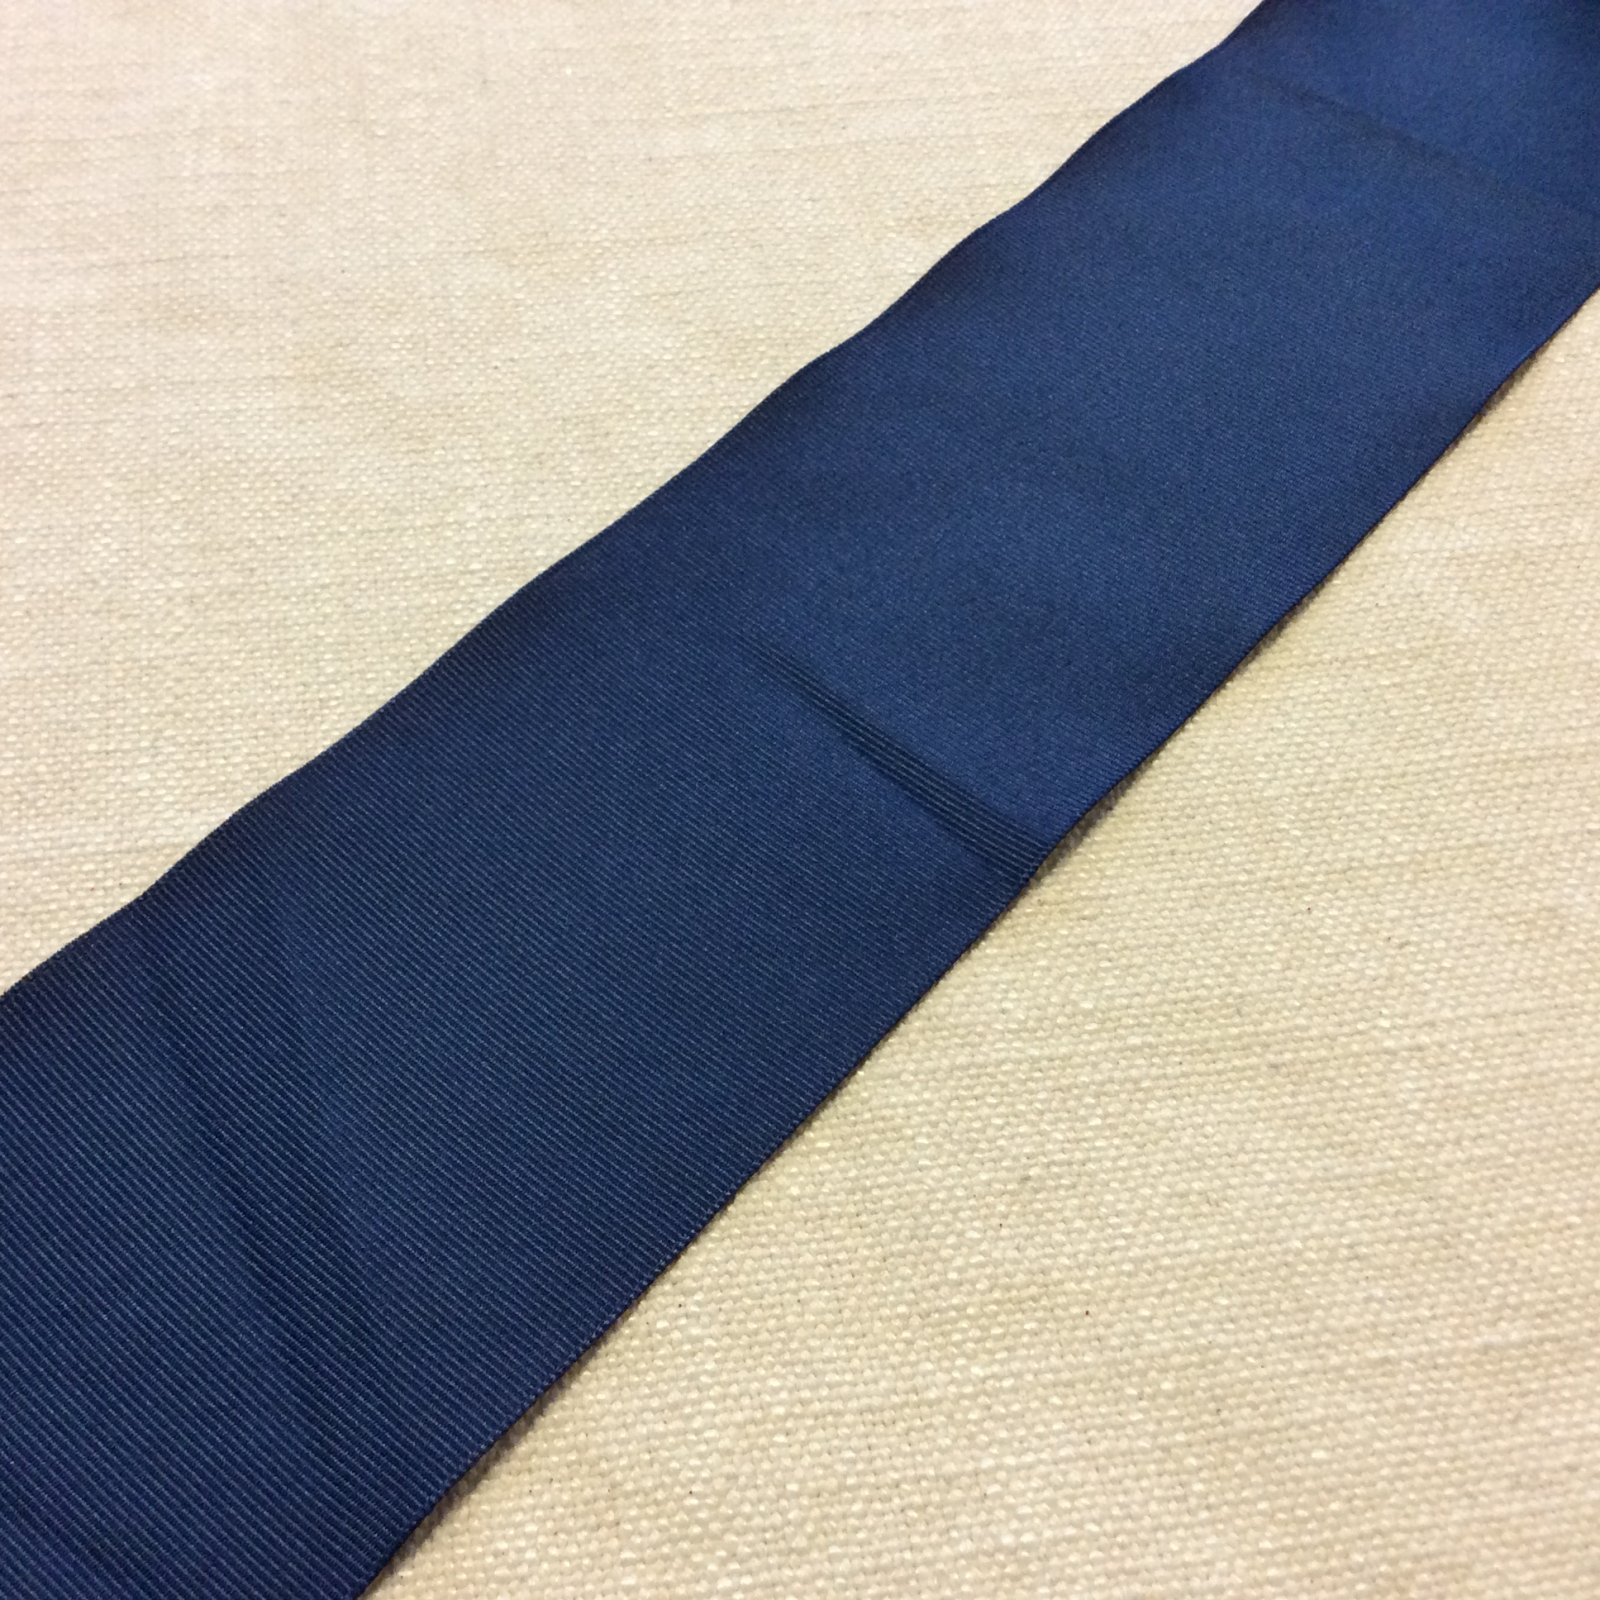 Grosgrain Ribbon 3 Navy Blue Trim Ribbon RIB1133